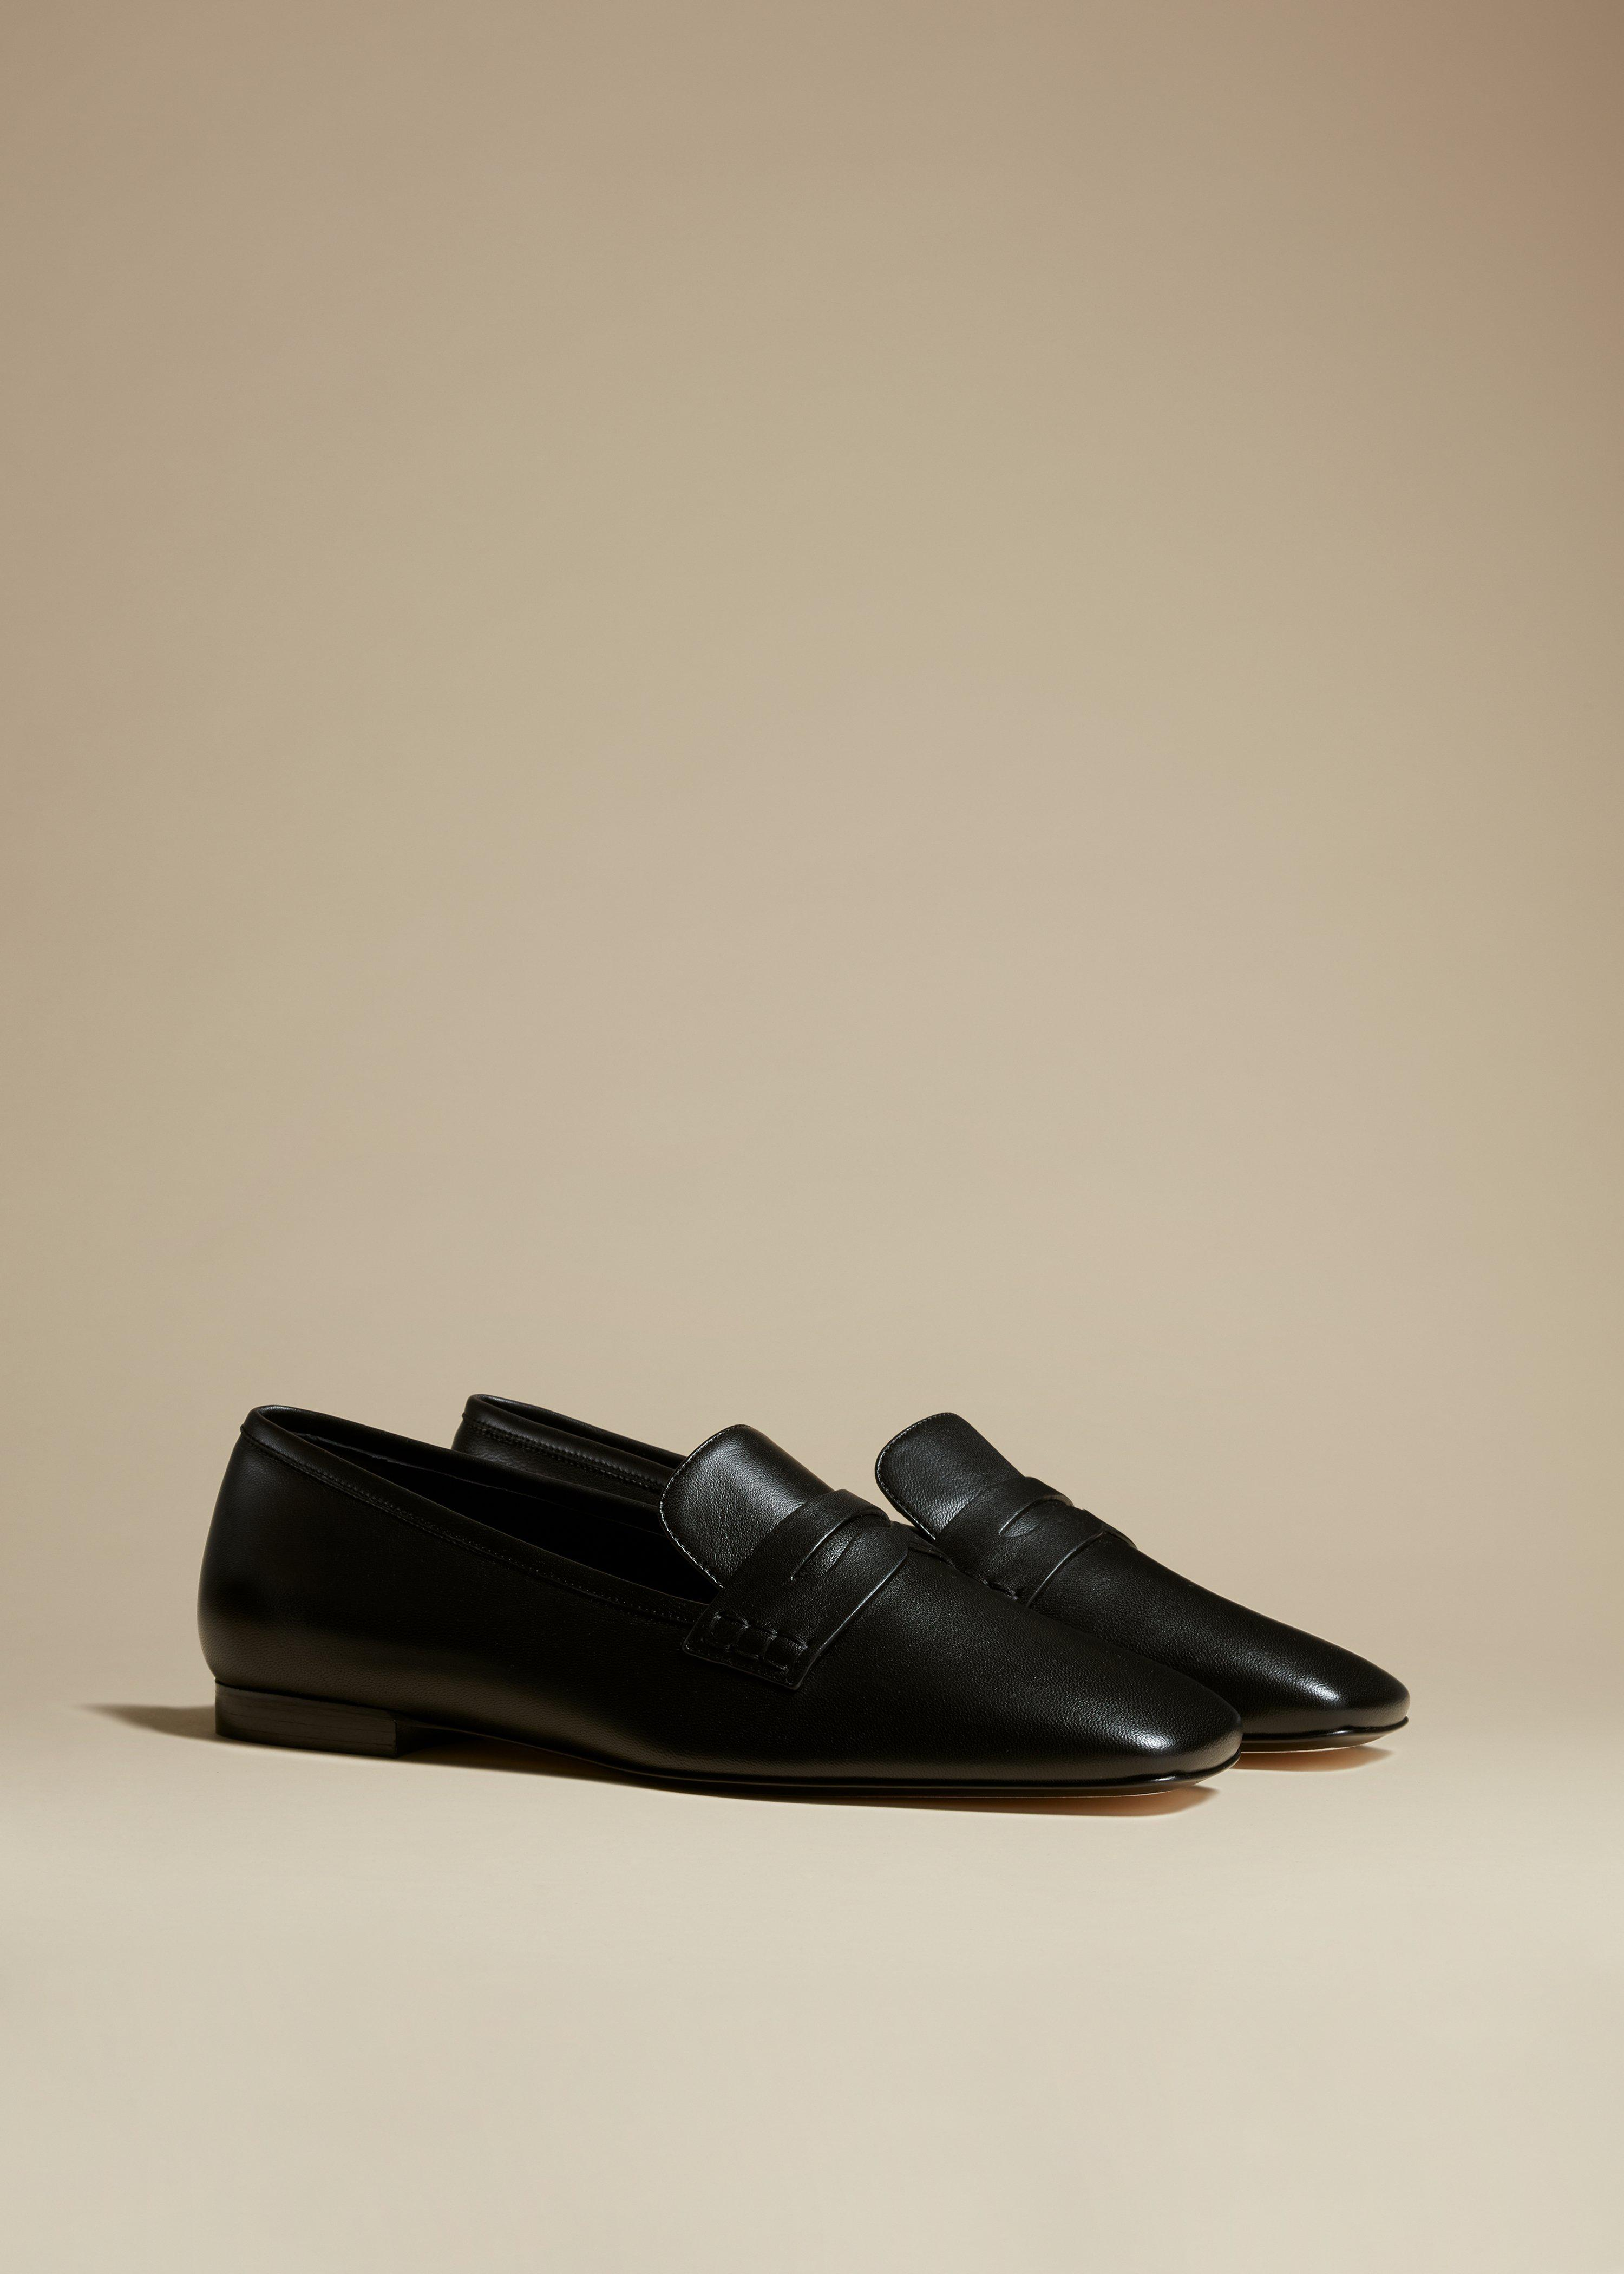 The Carlisle Loafer in Black Leather 1